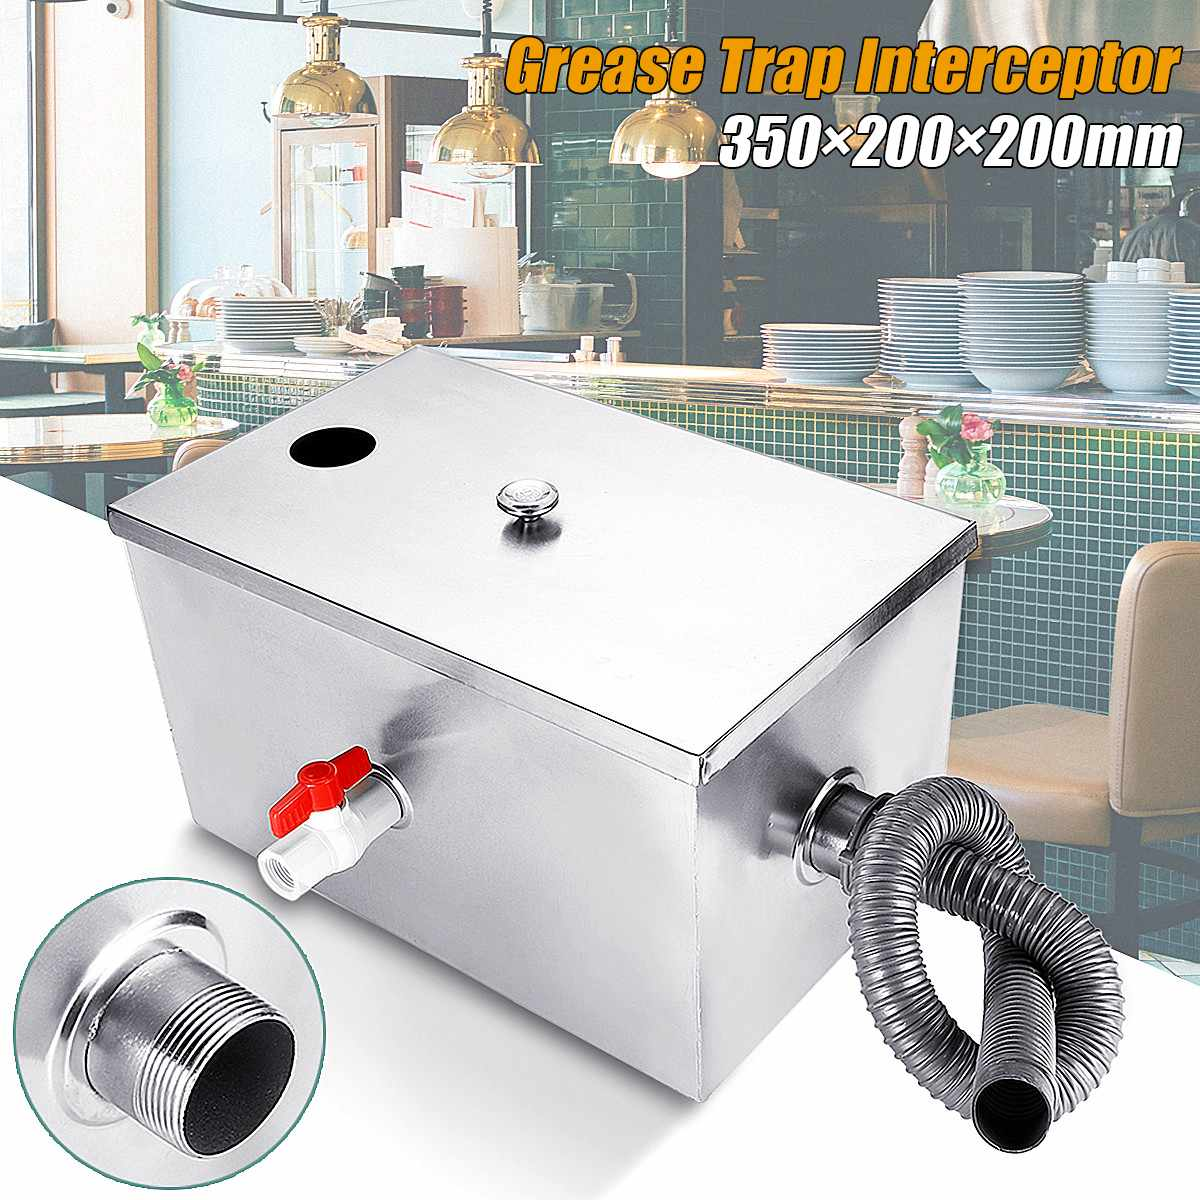 14x8x8'' Stainless Steel Grease Trap Interceptor Restaurant Kitchen Wastewater